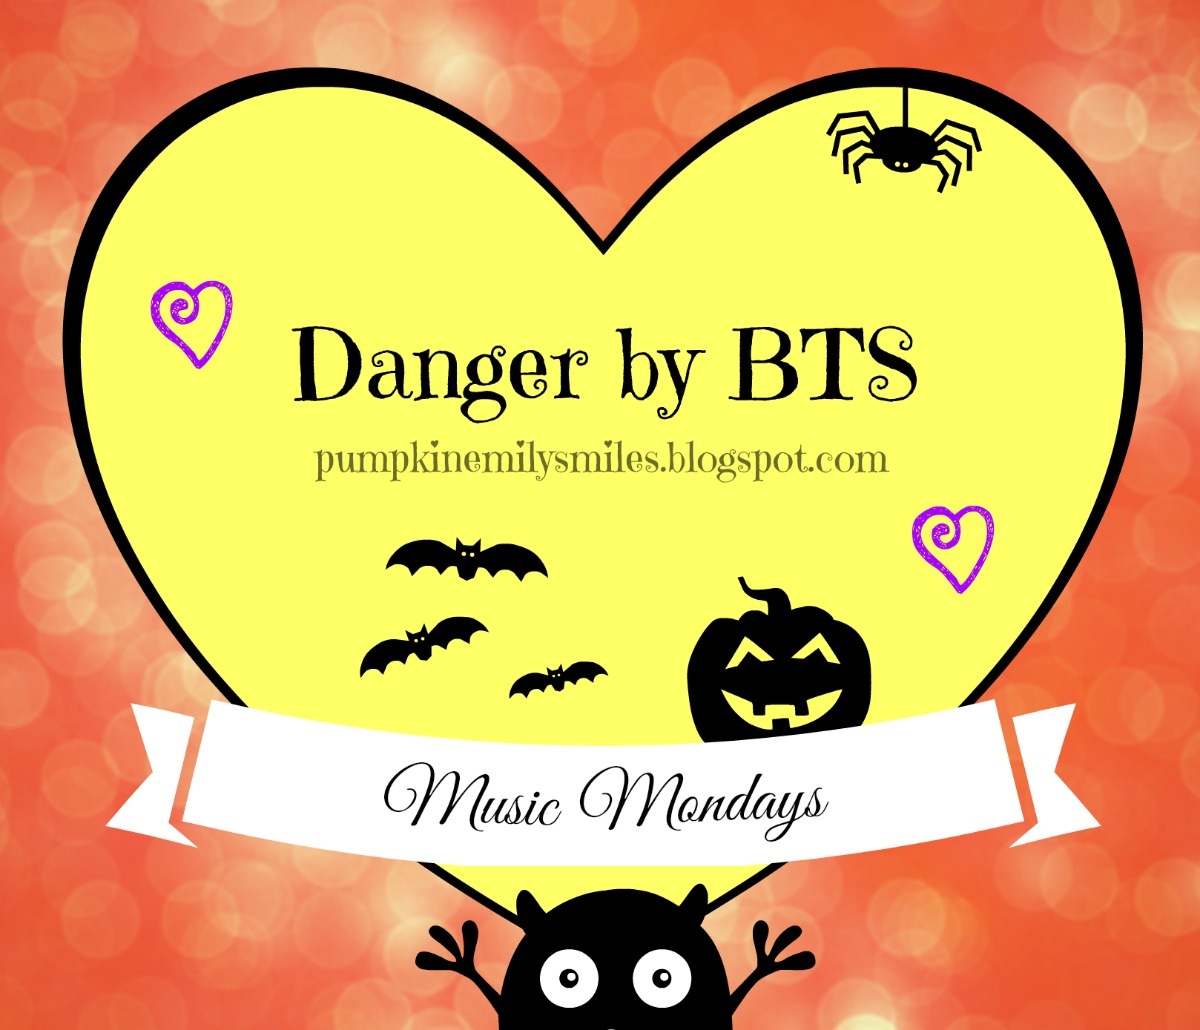 Danger by BTS Music Mondays